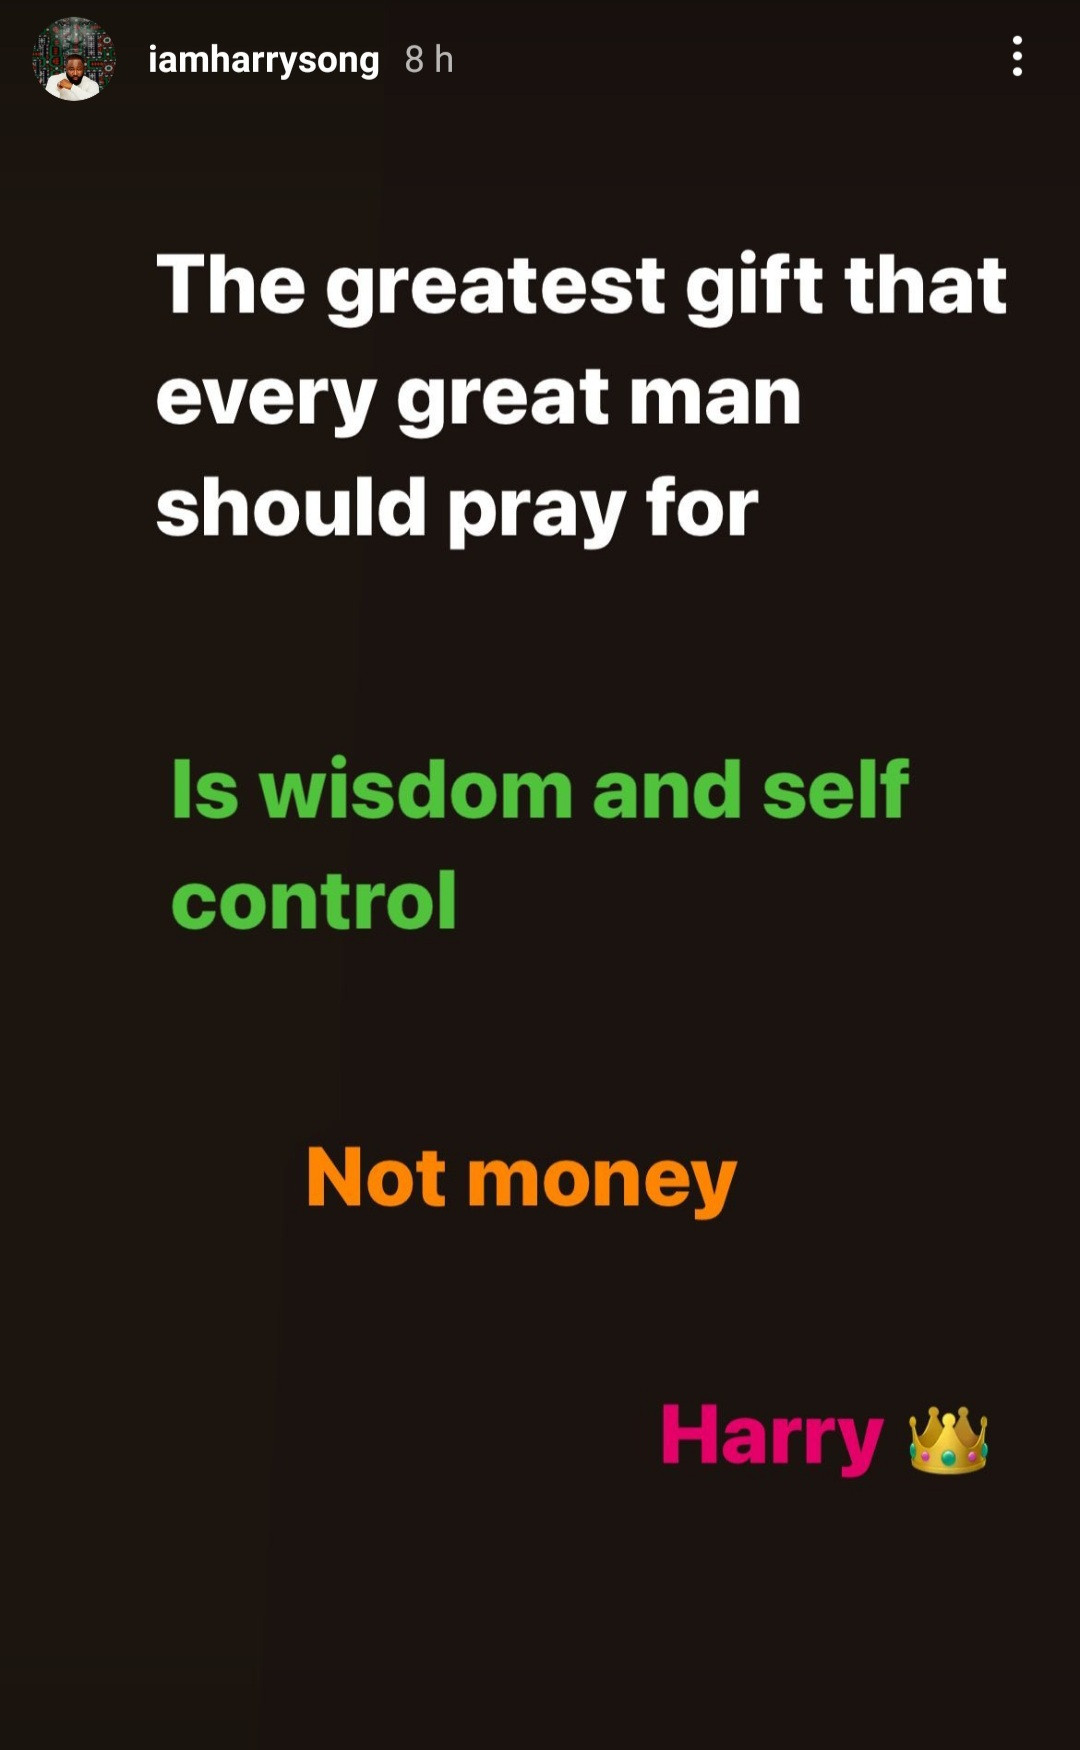 Great men pray for wisdom and self control, not money - Singer Harrysong says